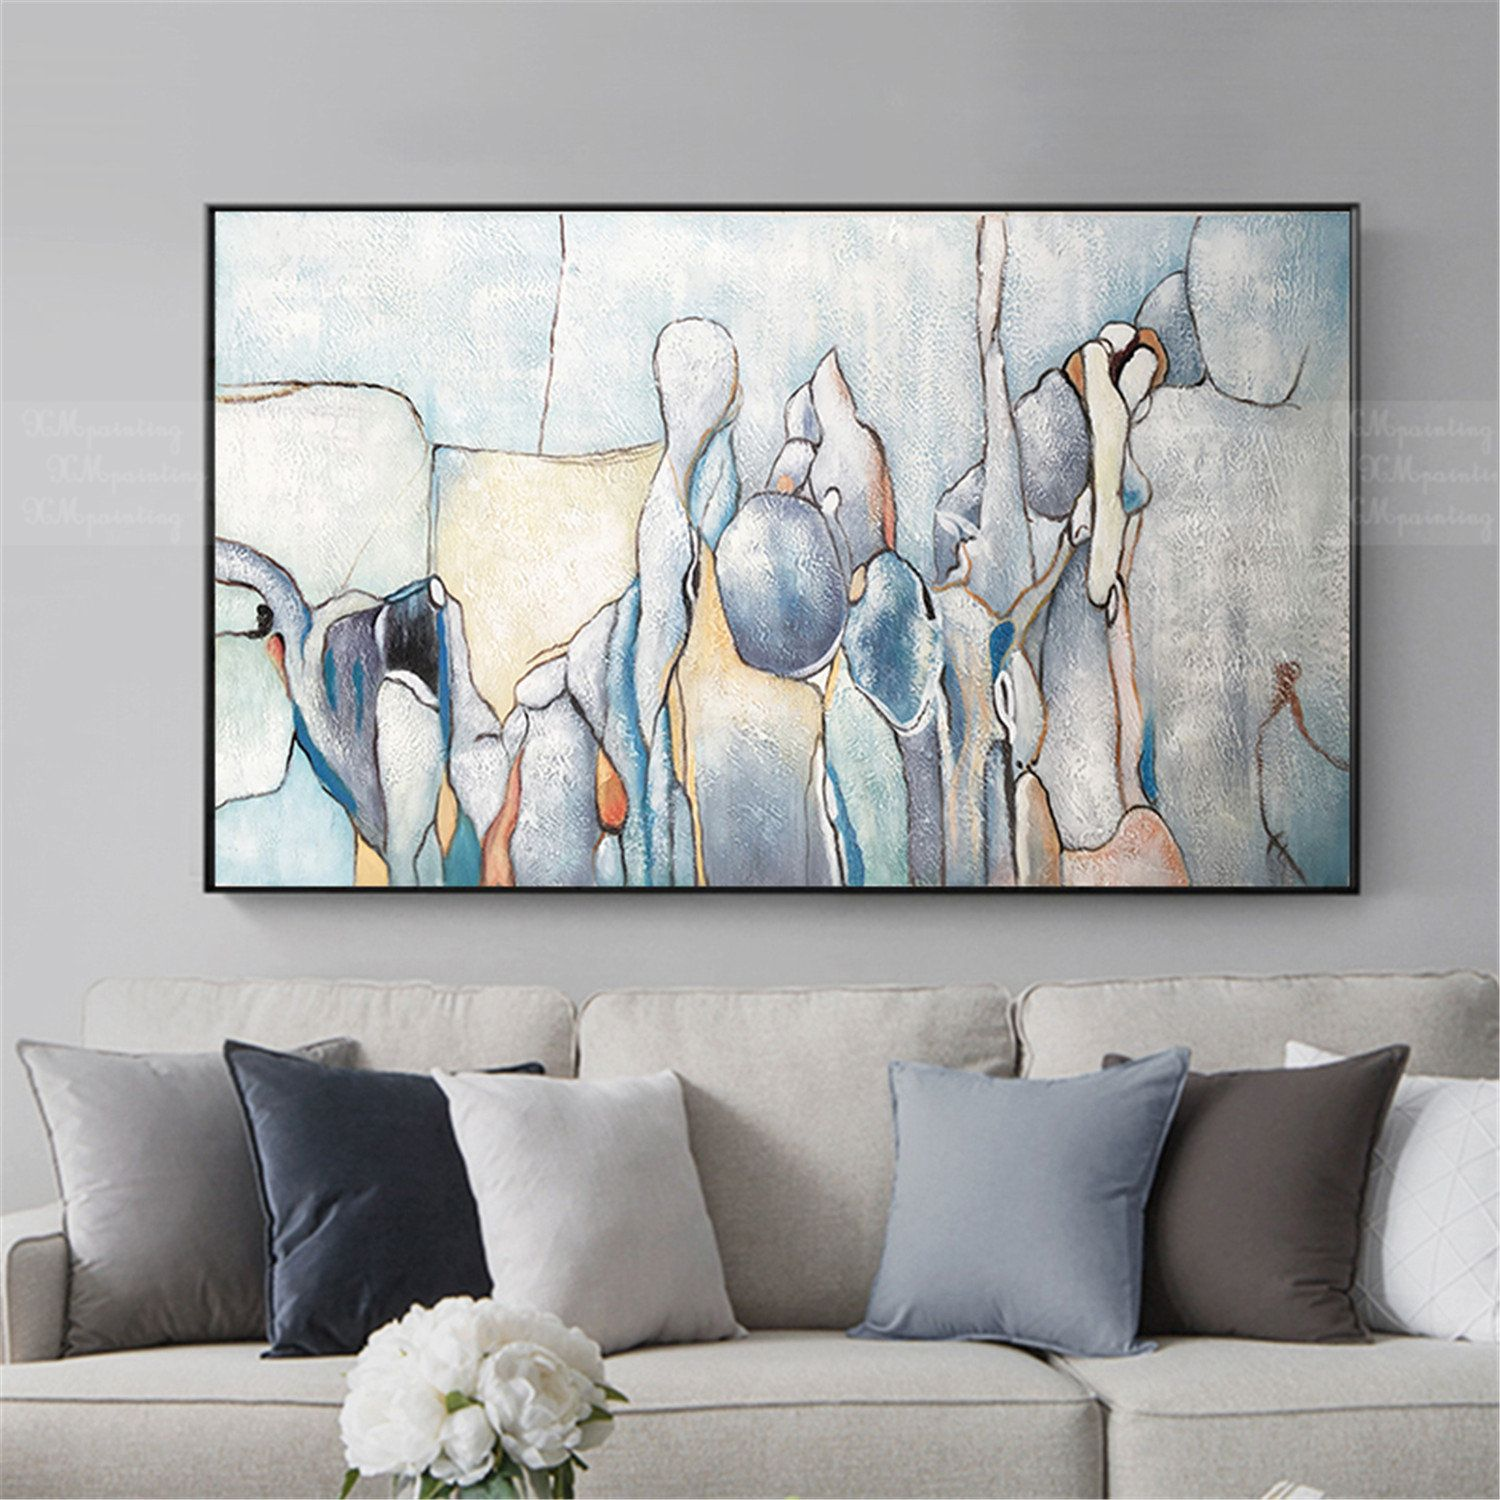 Abstract Painting Acrylic Canvas Wall Art Pictures For Living Room Wall Decor Home Decor B Abstract Painting Acrylic Abstract Canvas Painting Abstract Painting